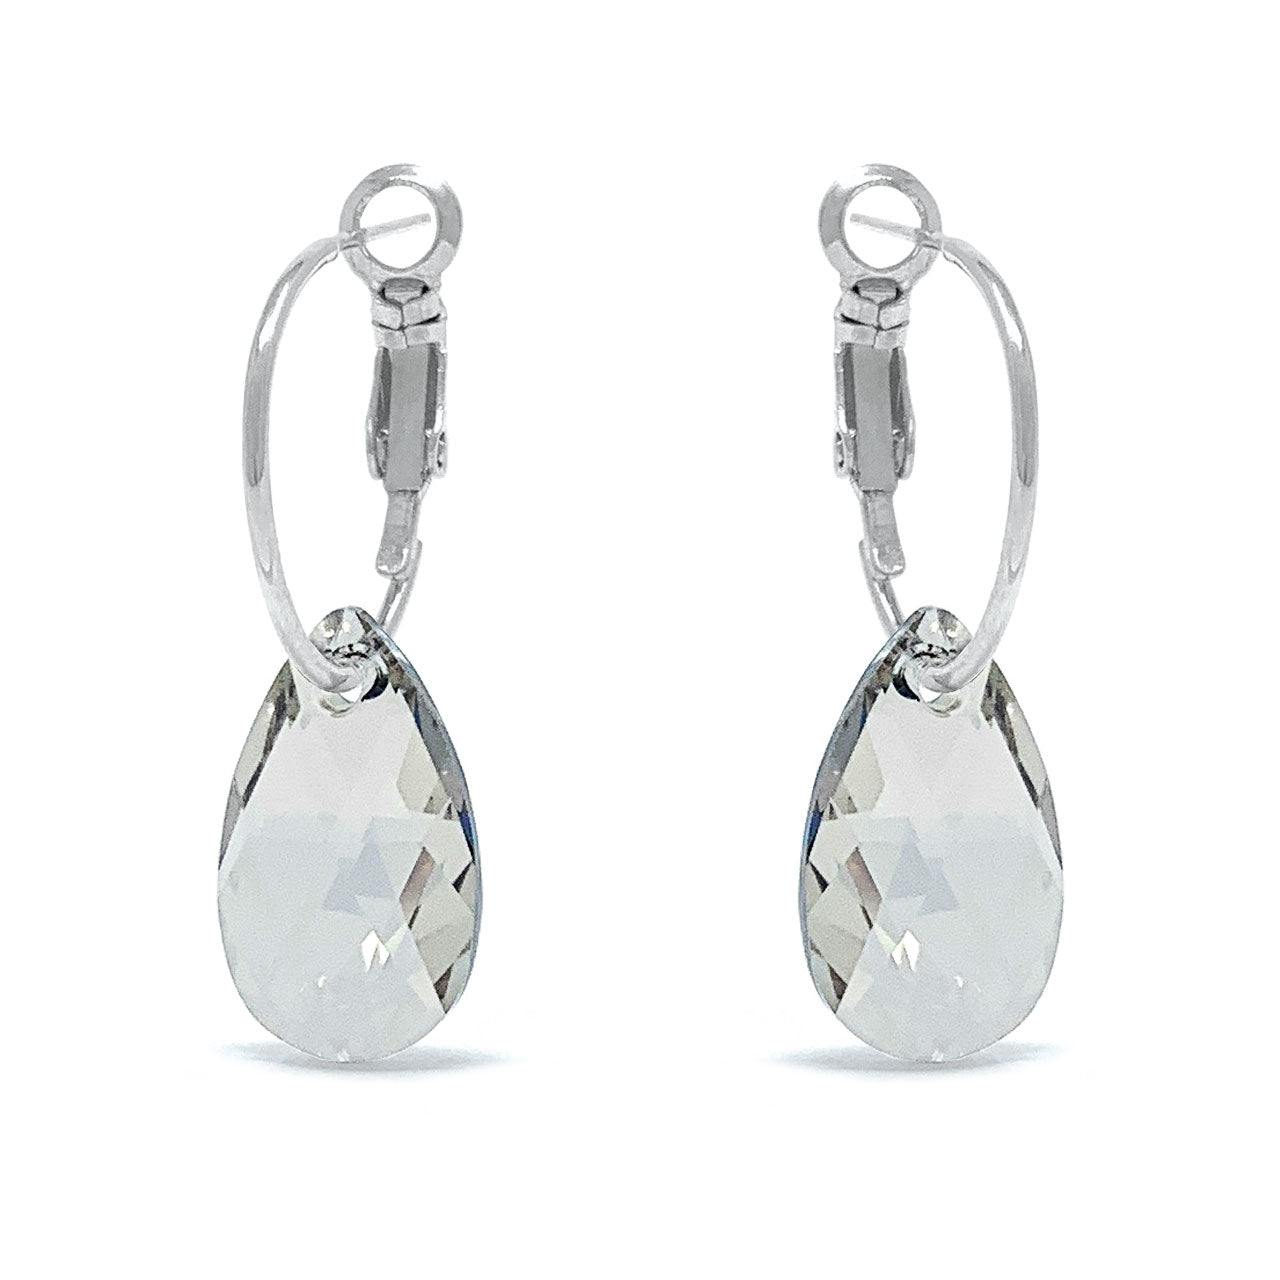 Aurora Small Drop Earrings with Grey Silver Shade Pear Crystals from Swarovski Silver Toned Rhodium Plated - Ed Heart